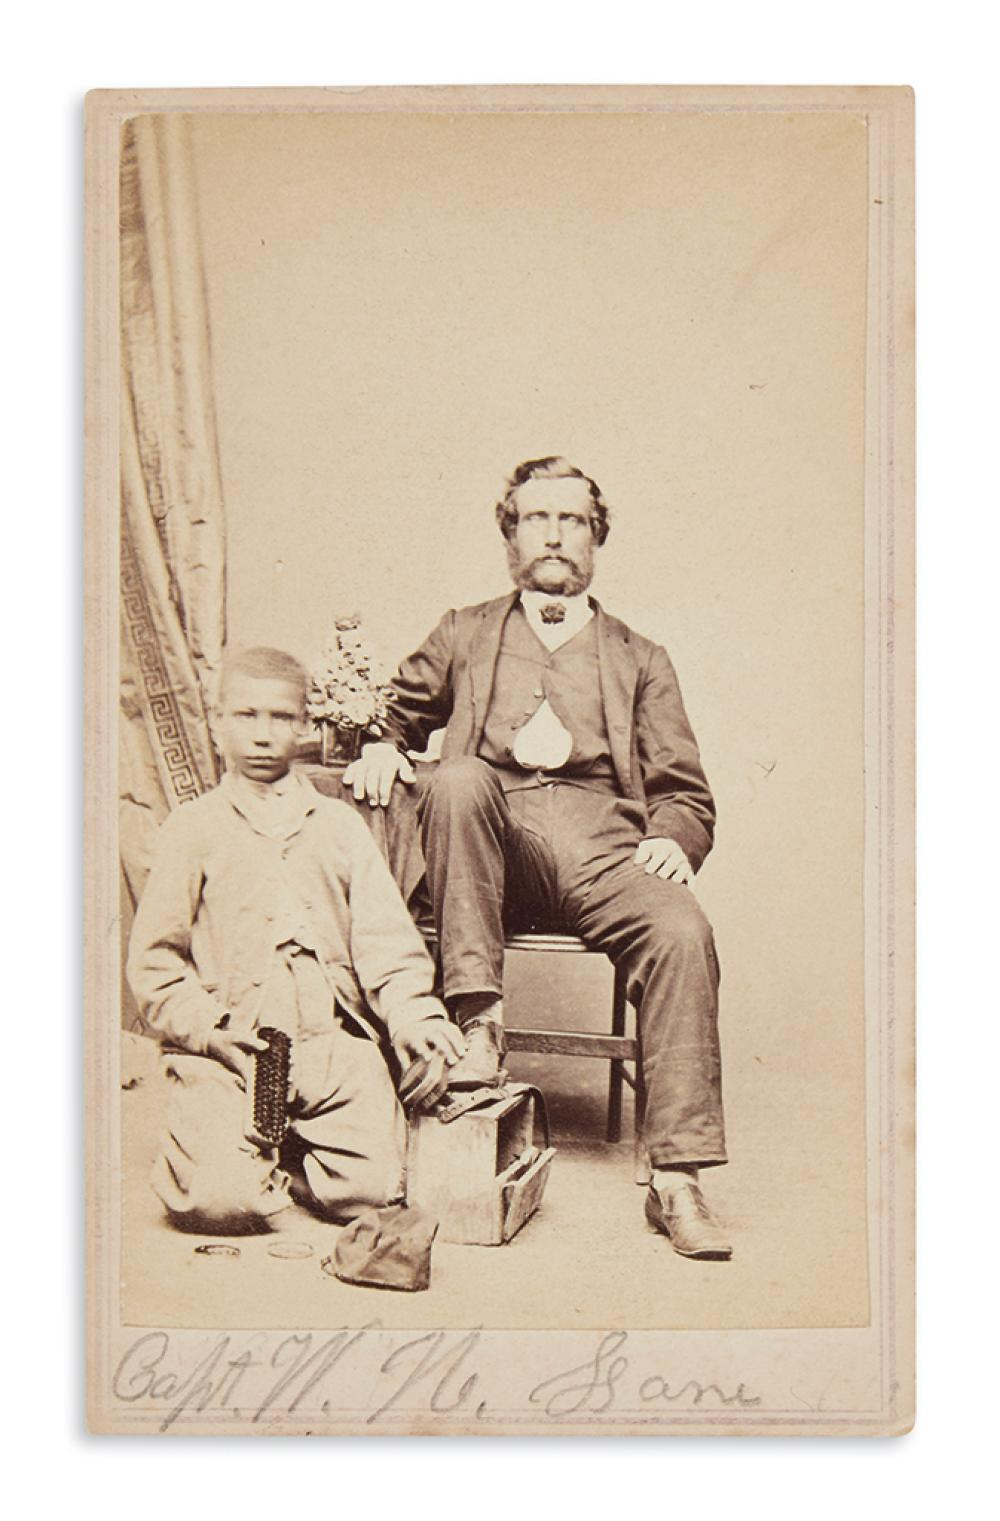 (PHOTOGRAPHY.) Holmes; photographer. African-American shoe shine boy with Capt. W. N. Lane.